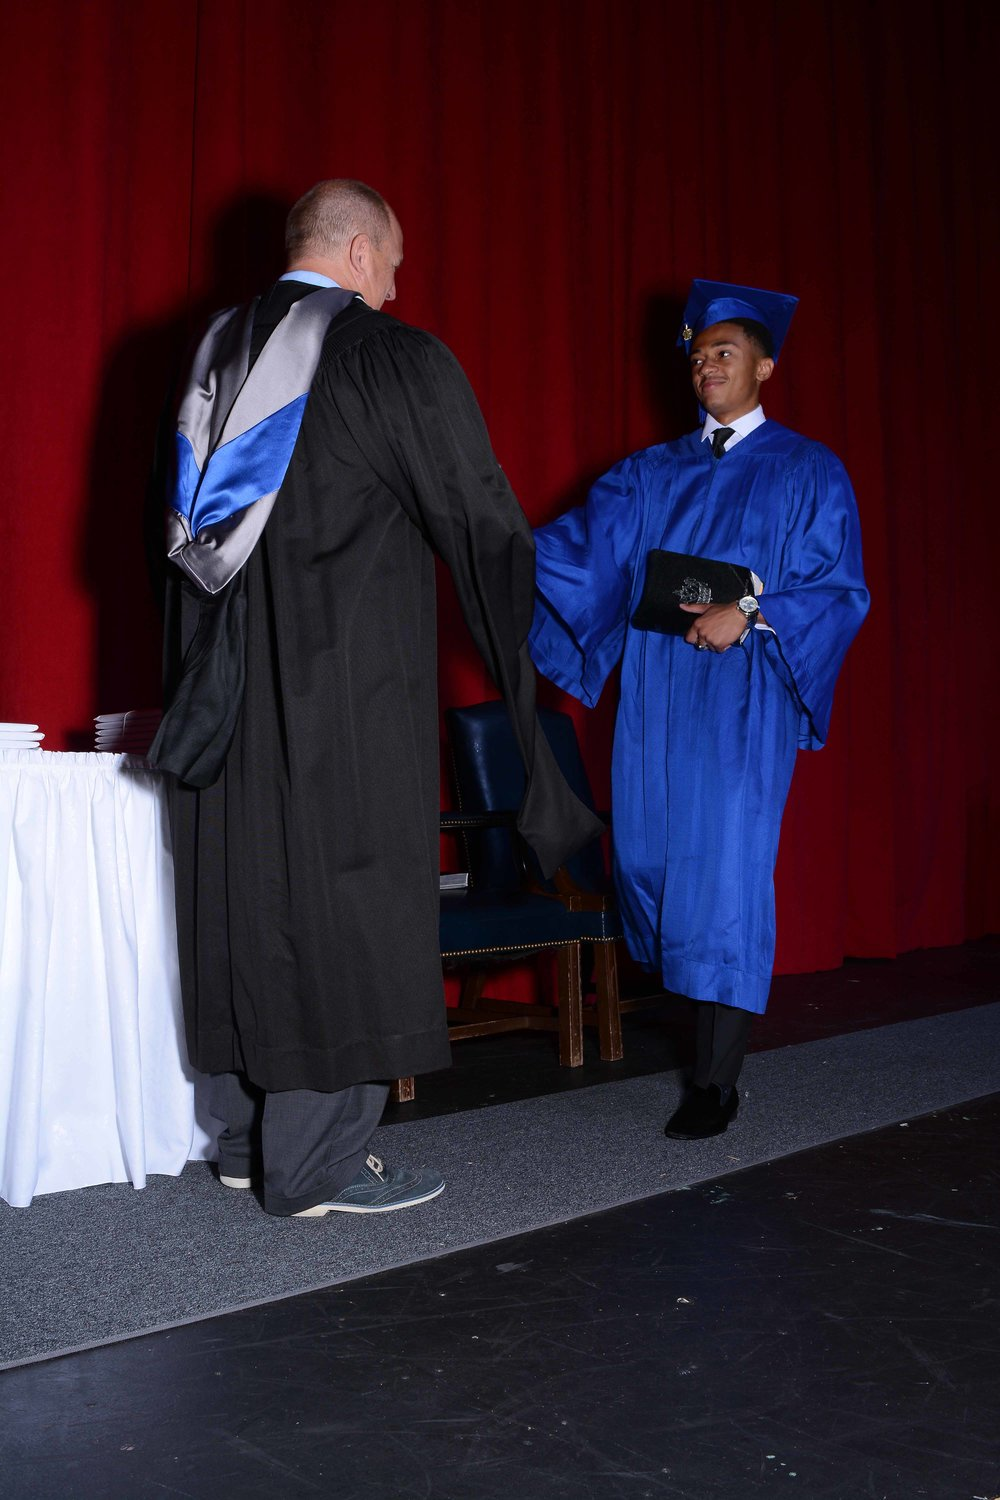 May14 Commencement158.jpg